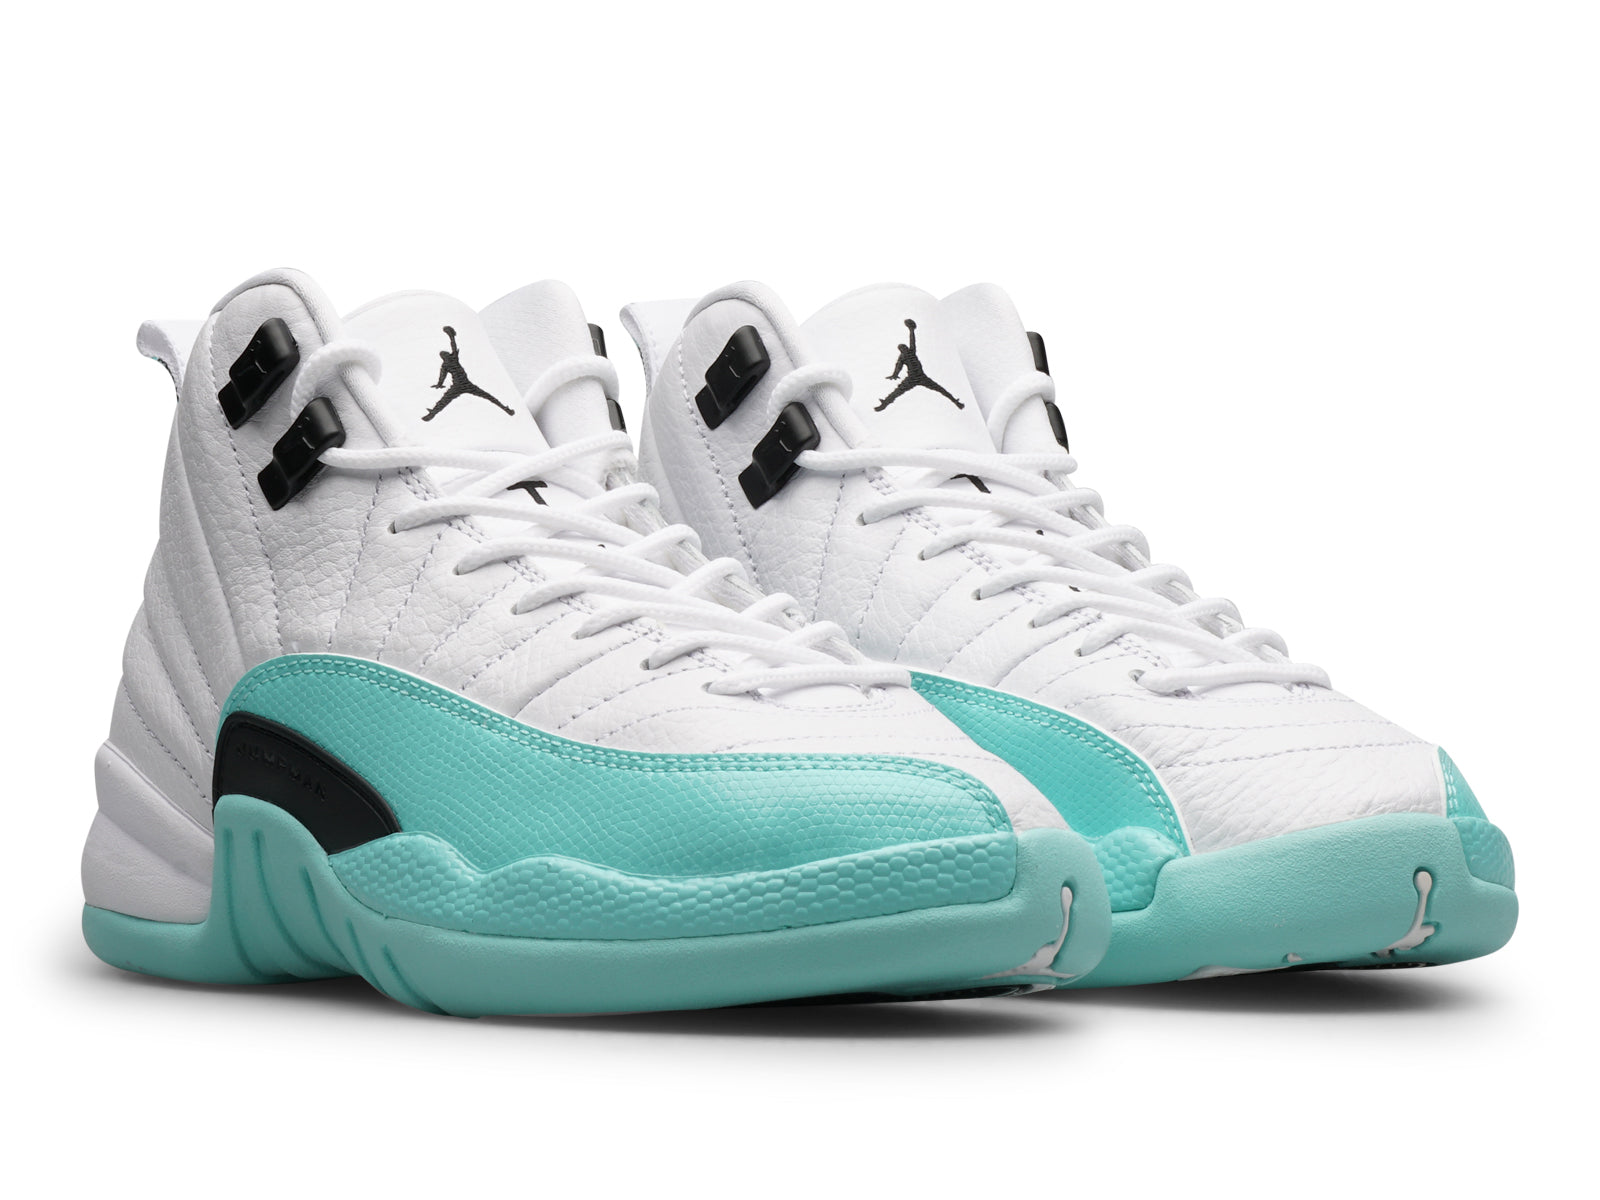 80a2ba2eb849ce The Air Jordan 12  Light Aqua  (GS) boasts a White leather upper  accompanied by a cool tint of aqua blue on the sole and mudguard.